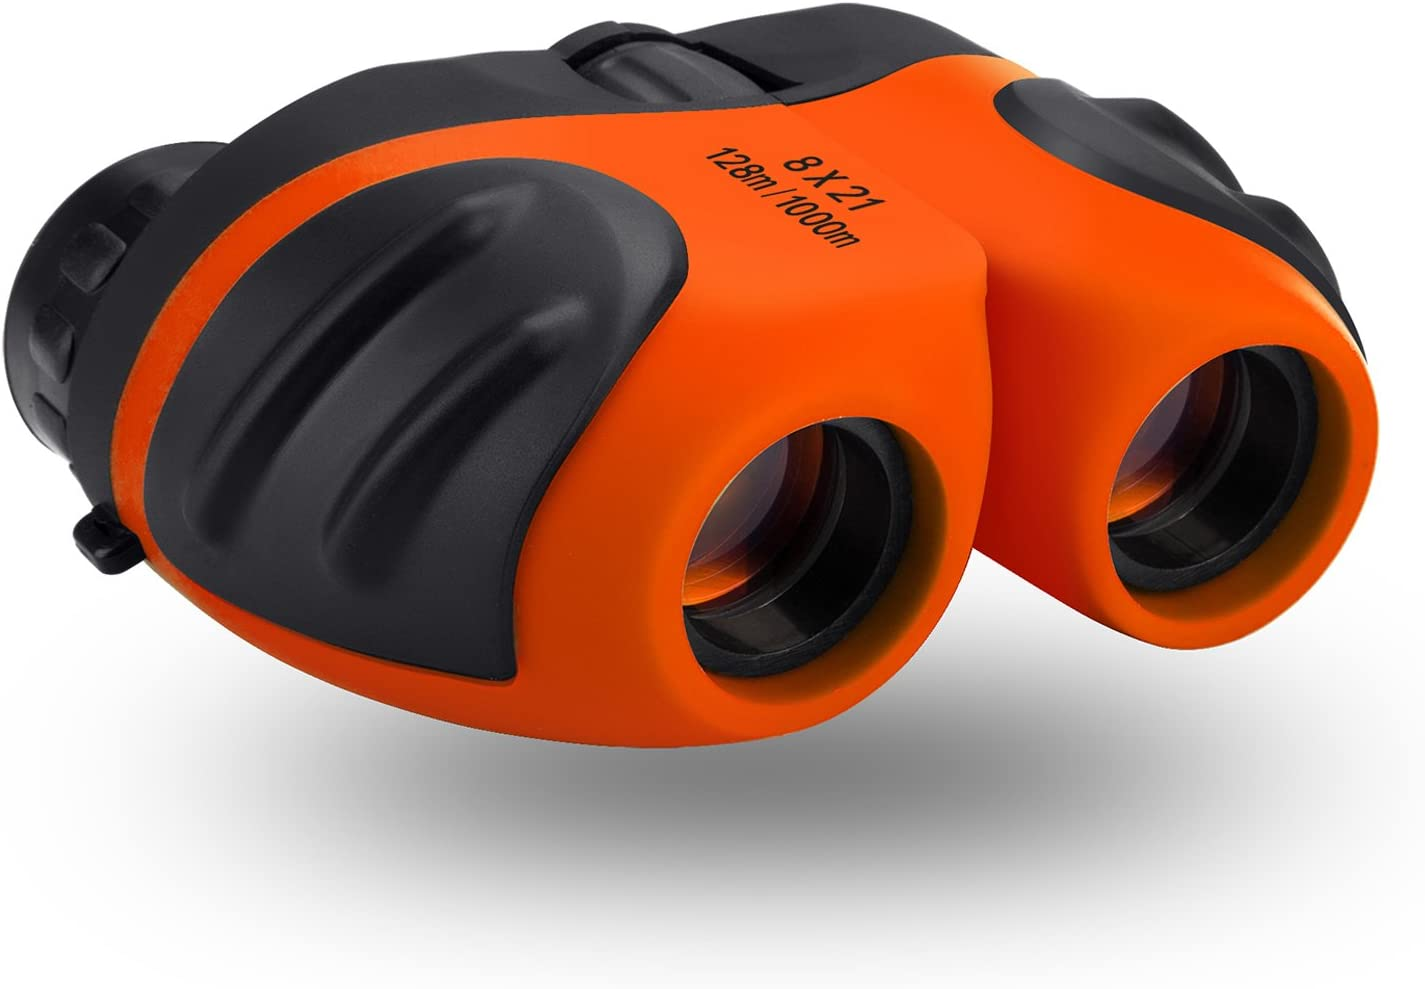 Outdoor Fun Power Toys for 3-11 Year Old Boys Safari Kids Binoculars with High for Bird Watching Travel Best Christmas Birthday Presents Gifts for 6-12 Year Old Boys Girls